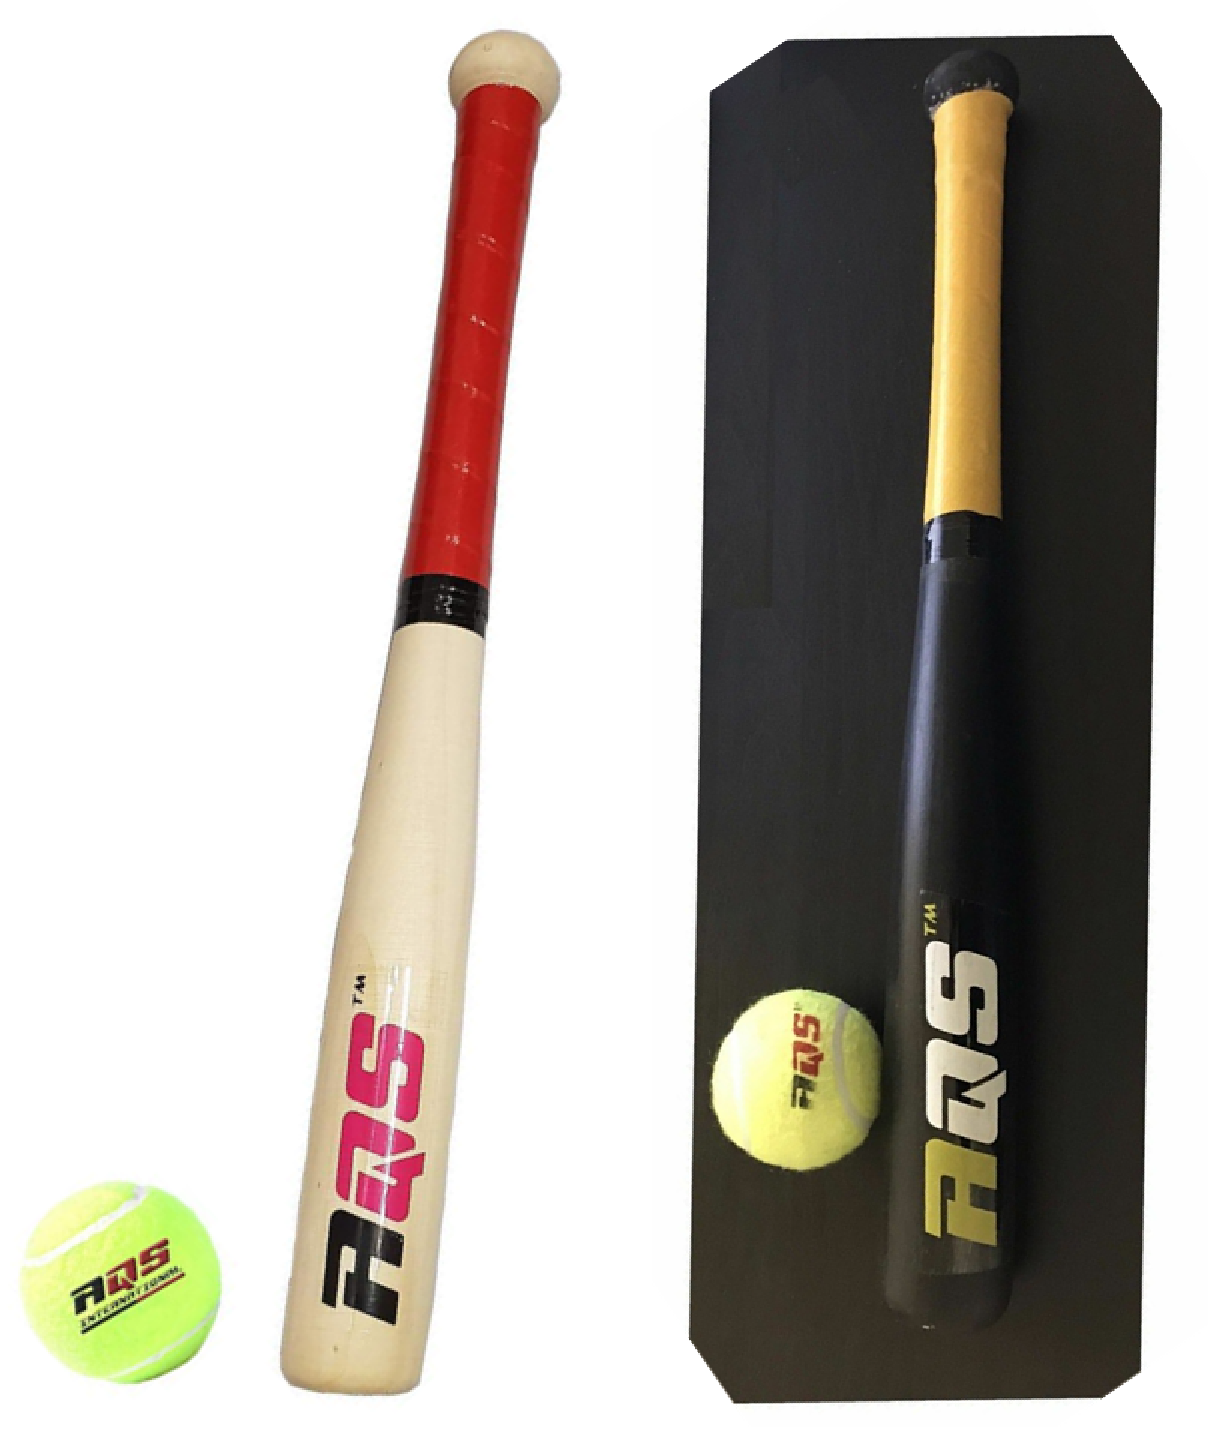 Details About Wooden Baseball Bat Rounder With Tennis Ball Sports Outdoor Kids Top Quality 17